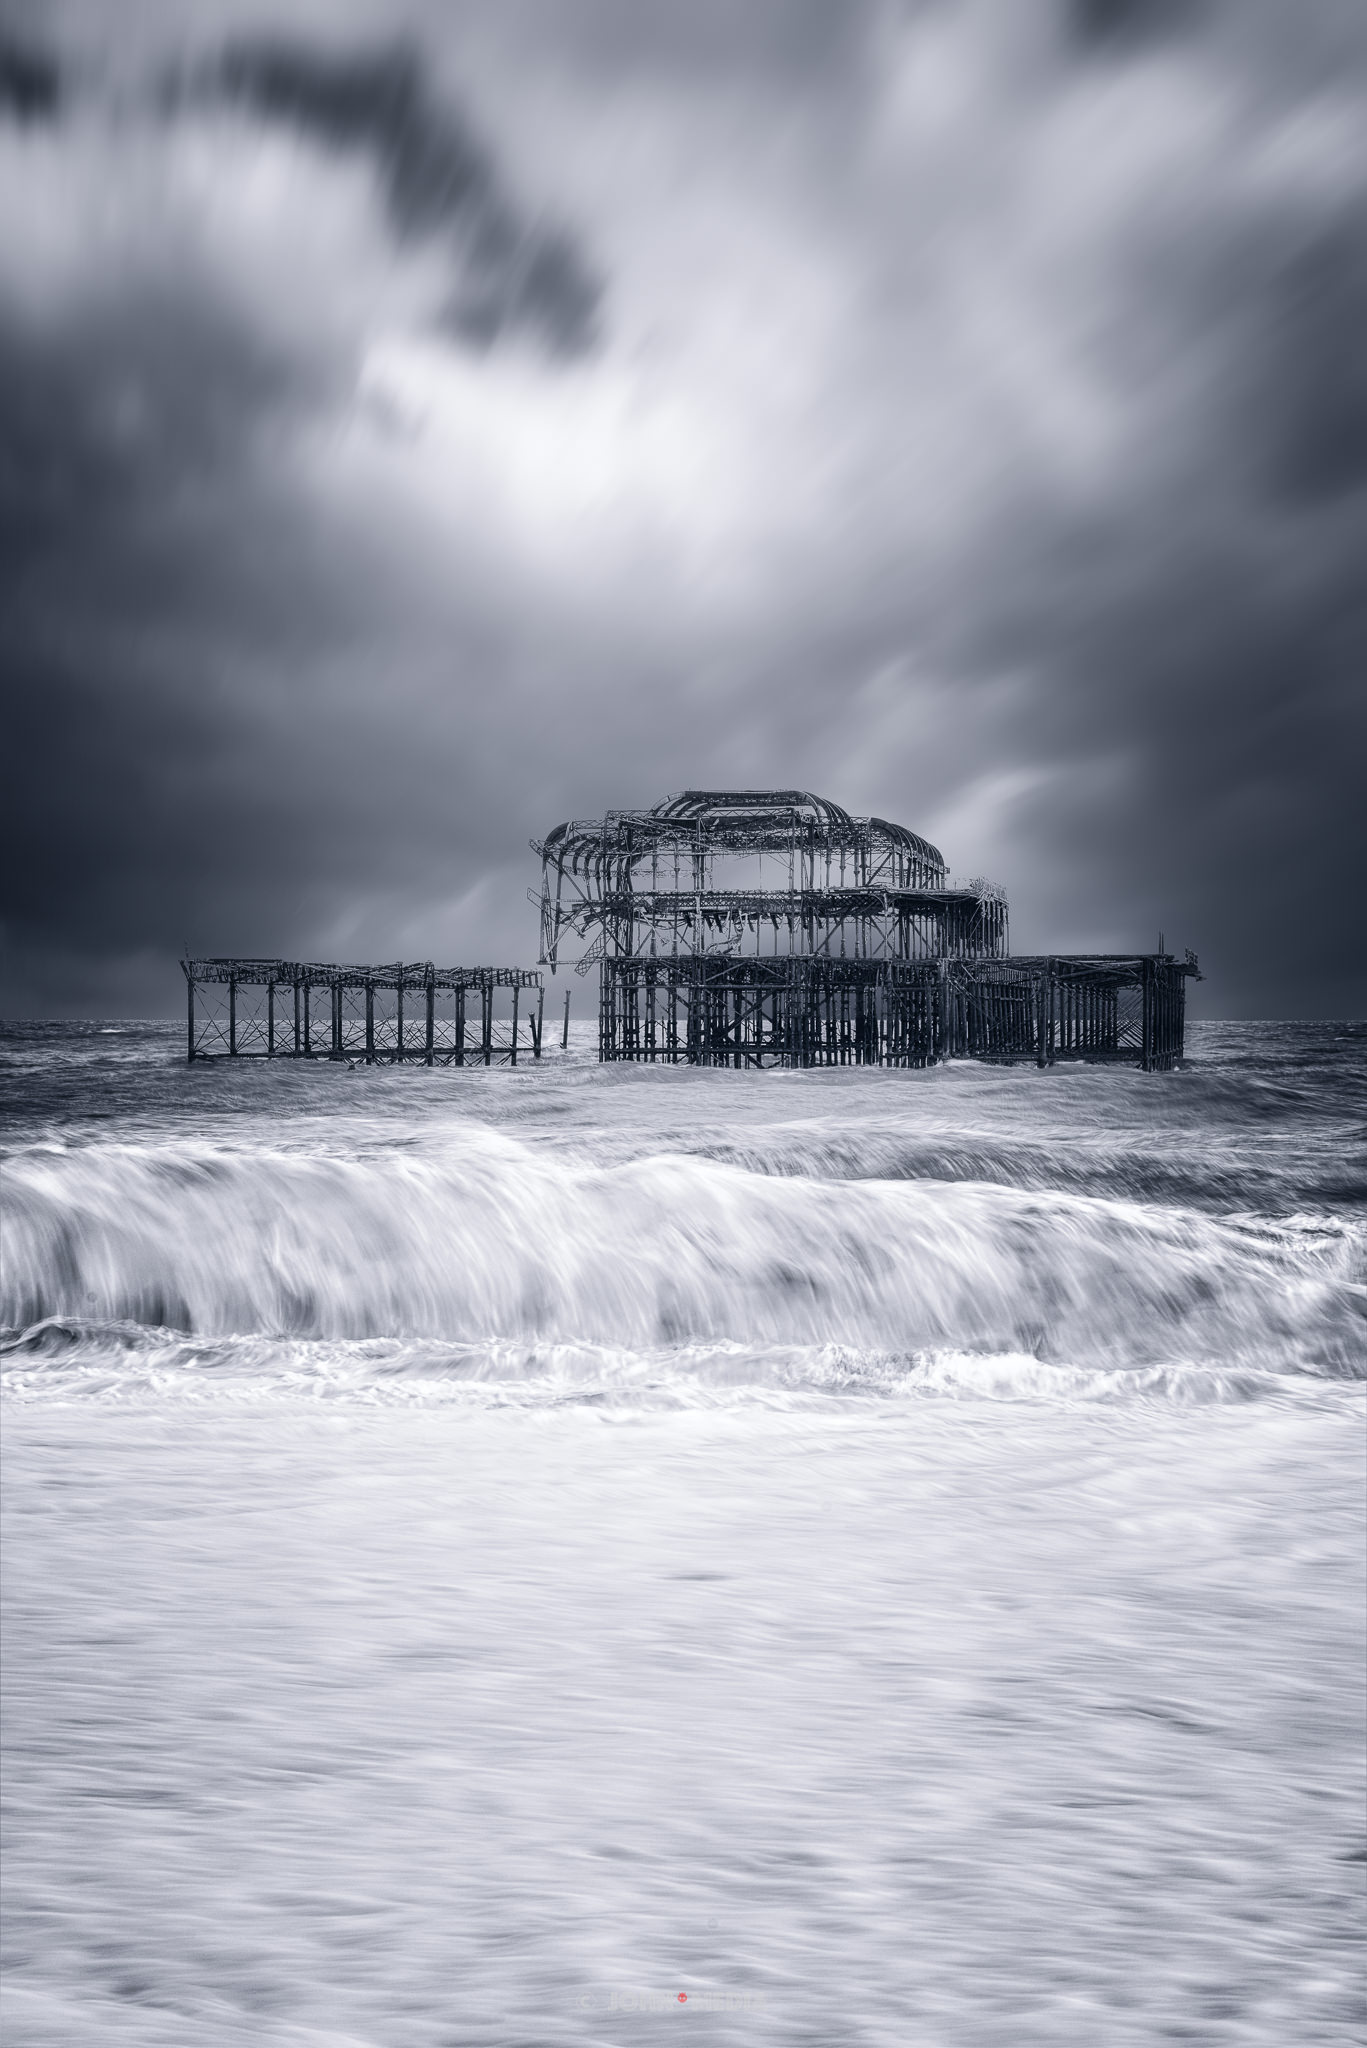 West pier in the storm